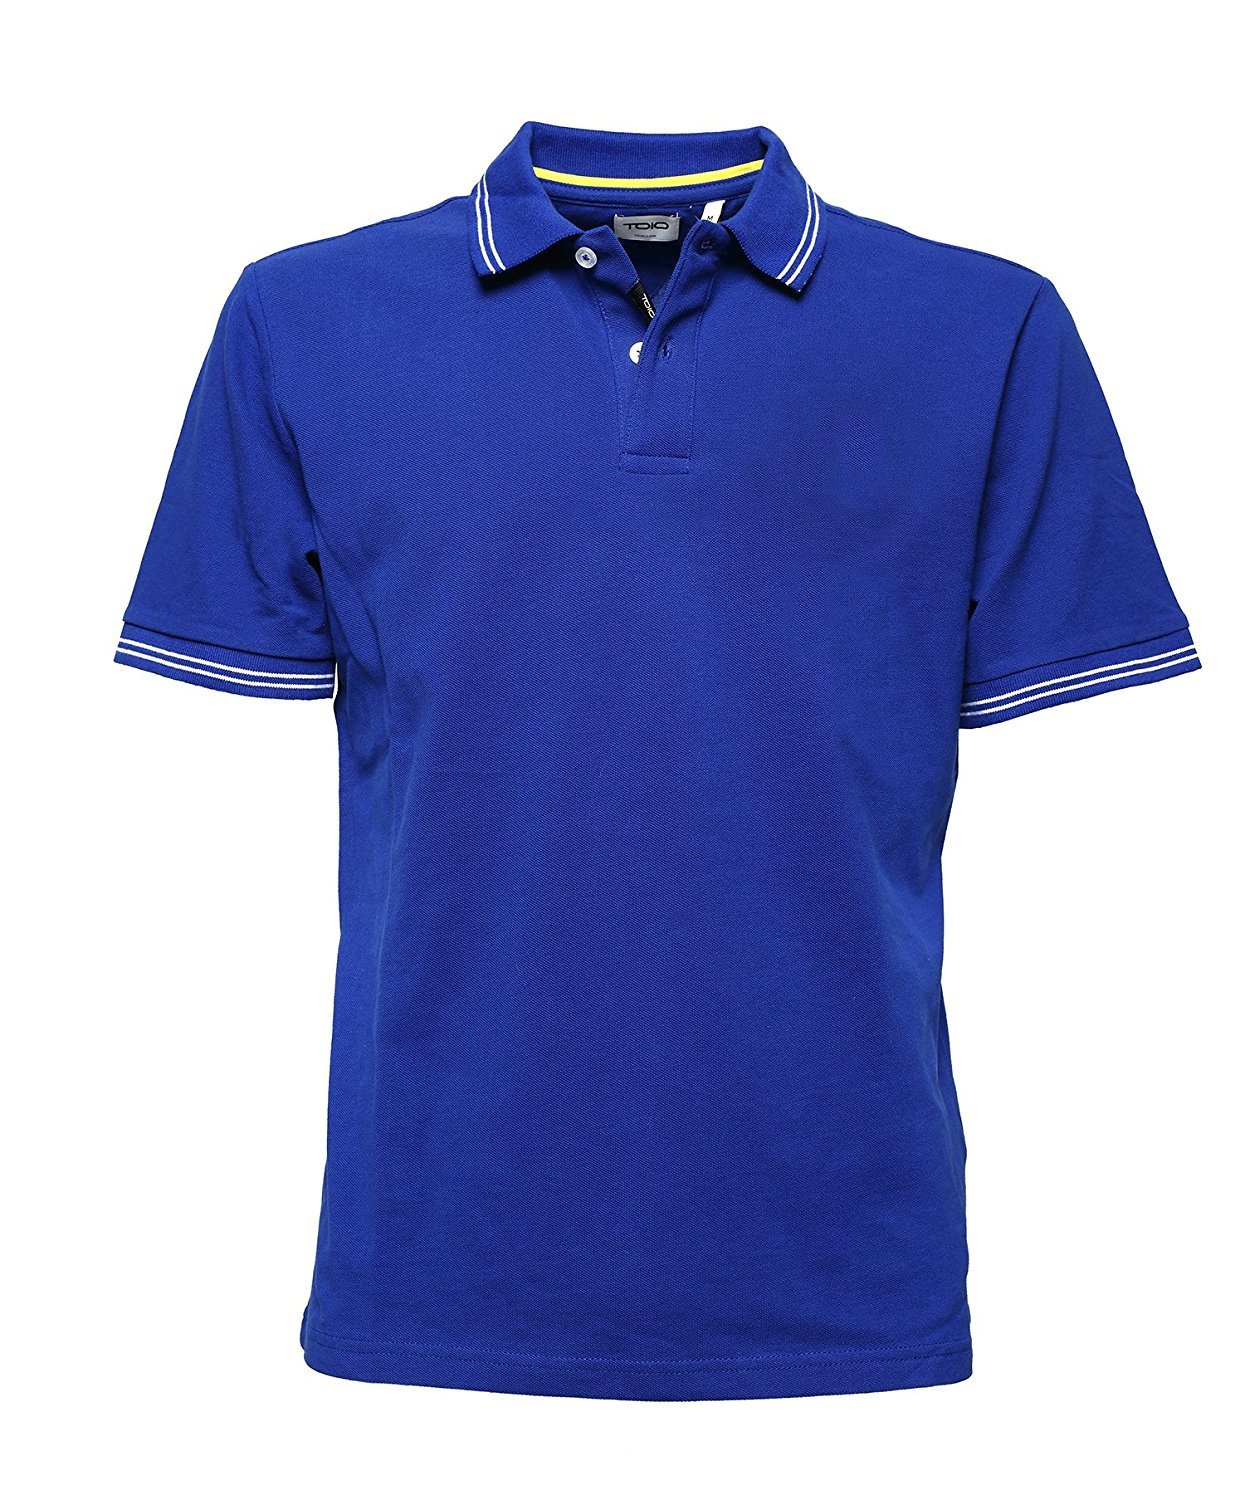 Bay Short Sleeve PoloShirt with Rib at Collar and at Sleeve Edge Mens, 100% Cotton blueee Montecarlo Two Buttons Opening 2XLarge